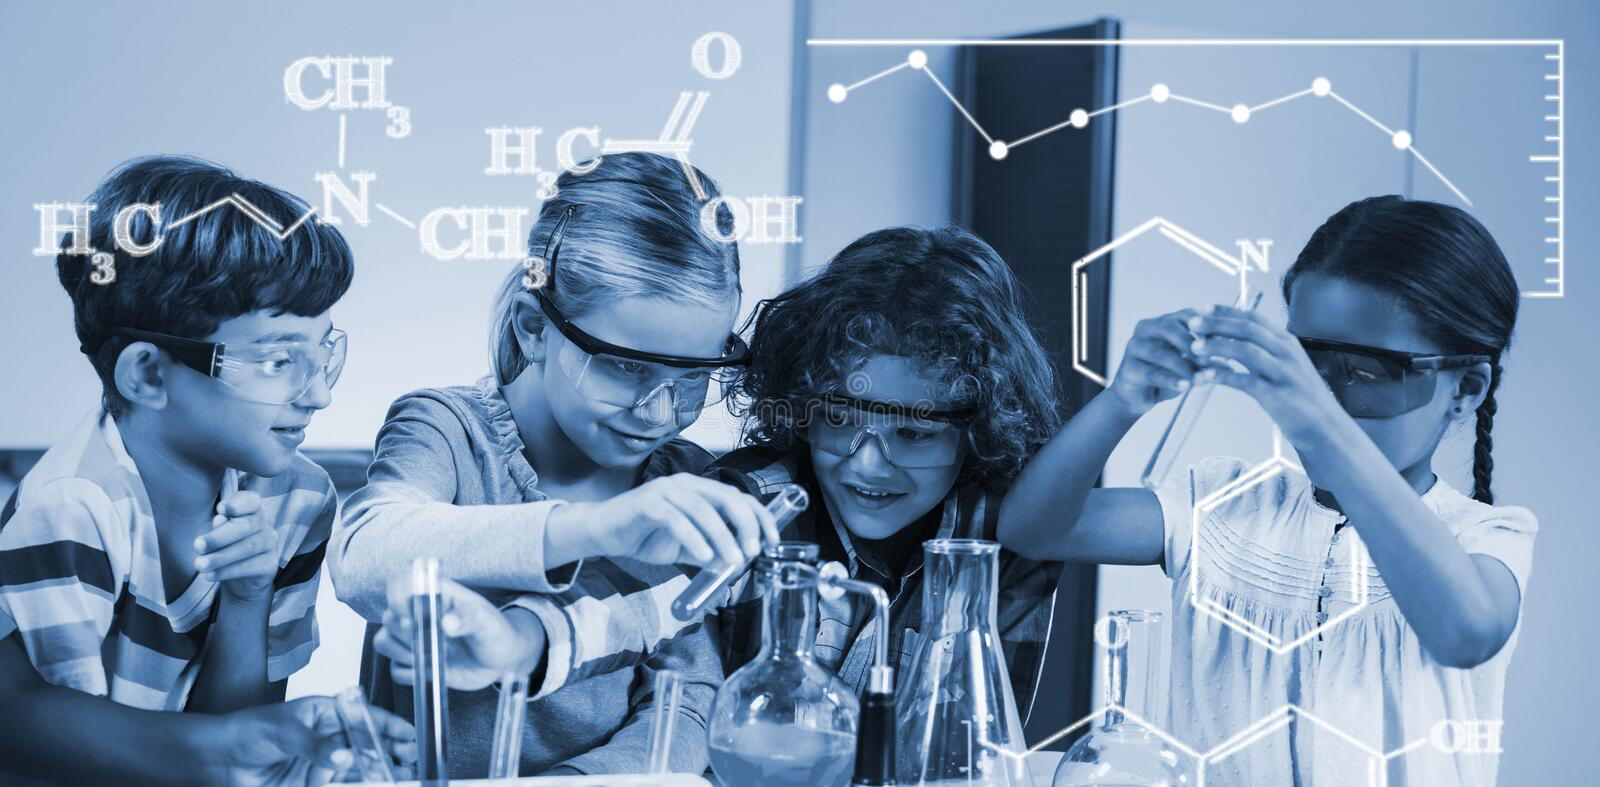 Composite image of digital image of chemical formulas stock image